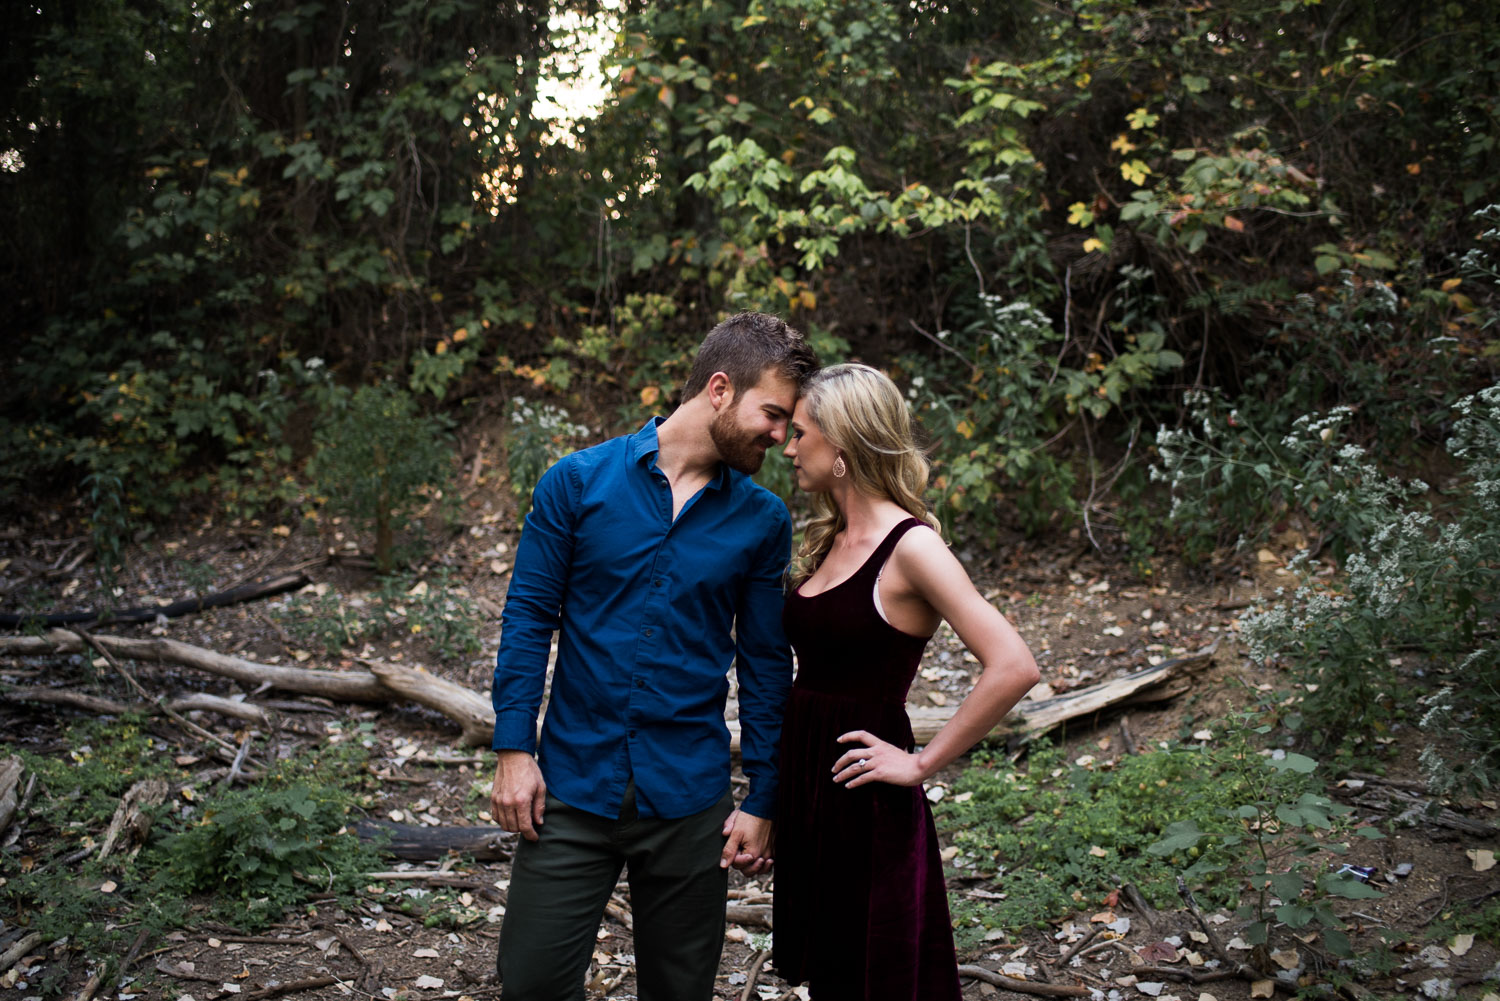 josh - lindsey - engagement - photos - alrington - texas - river - legacy - park-3.jpg